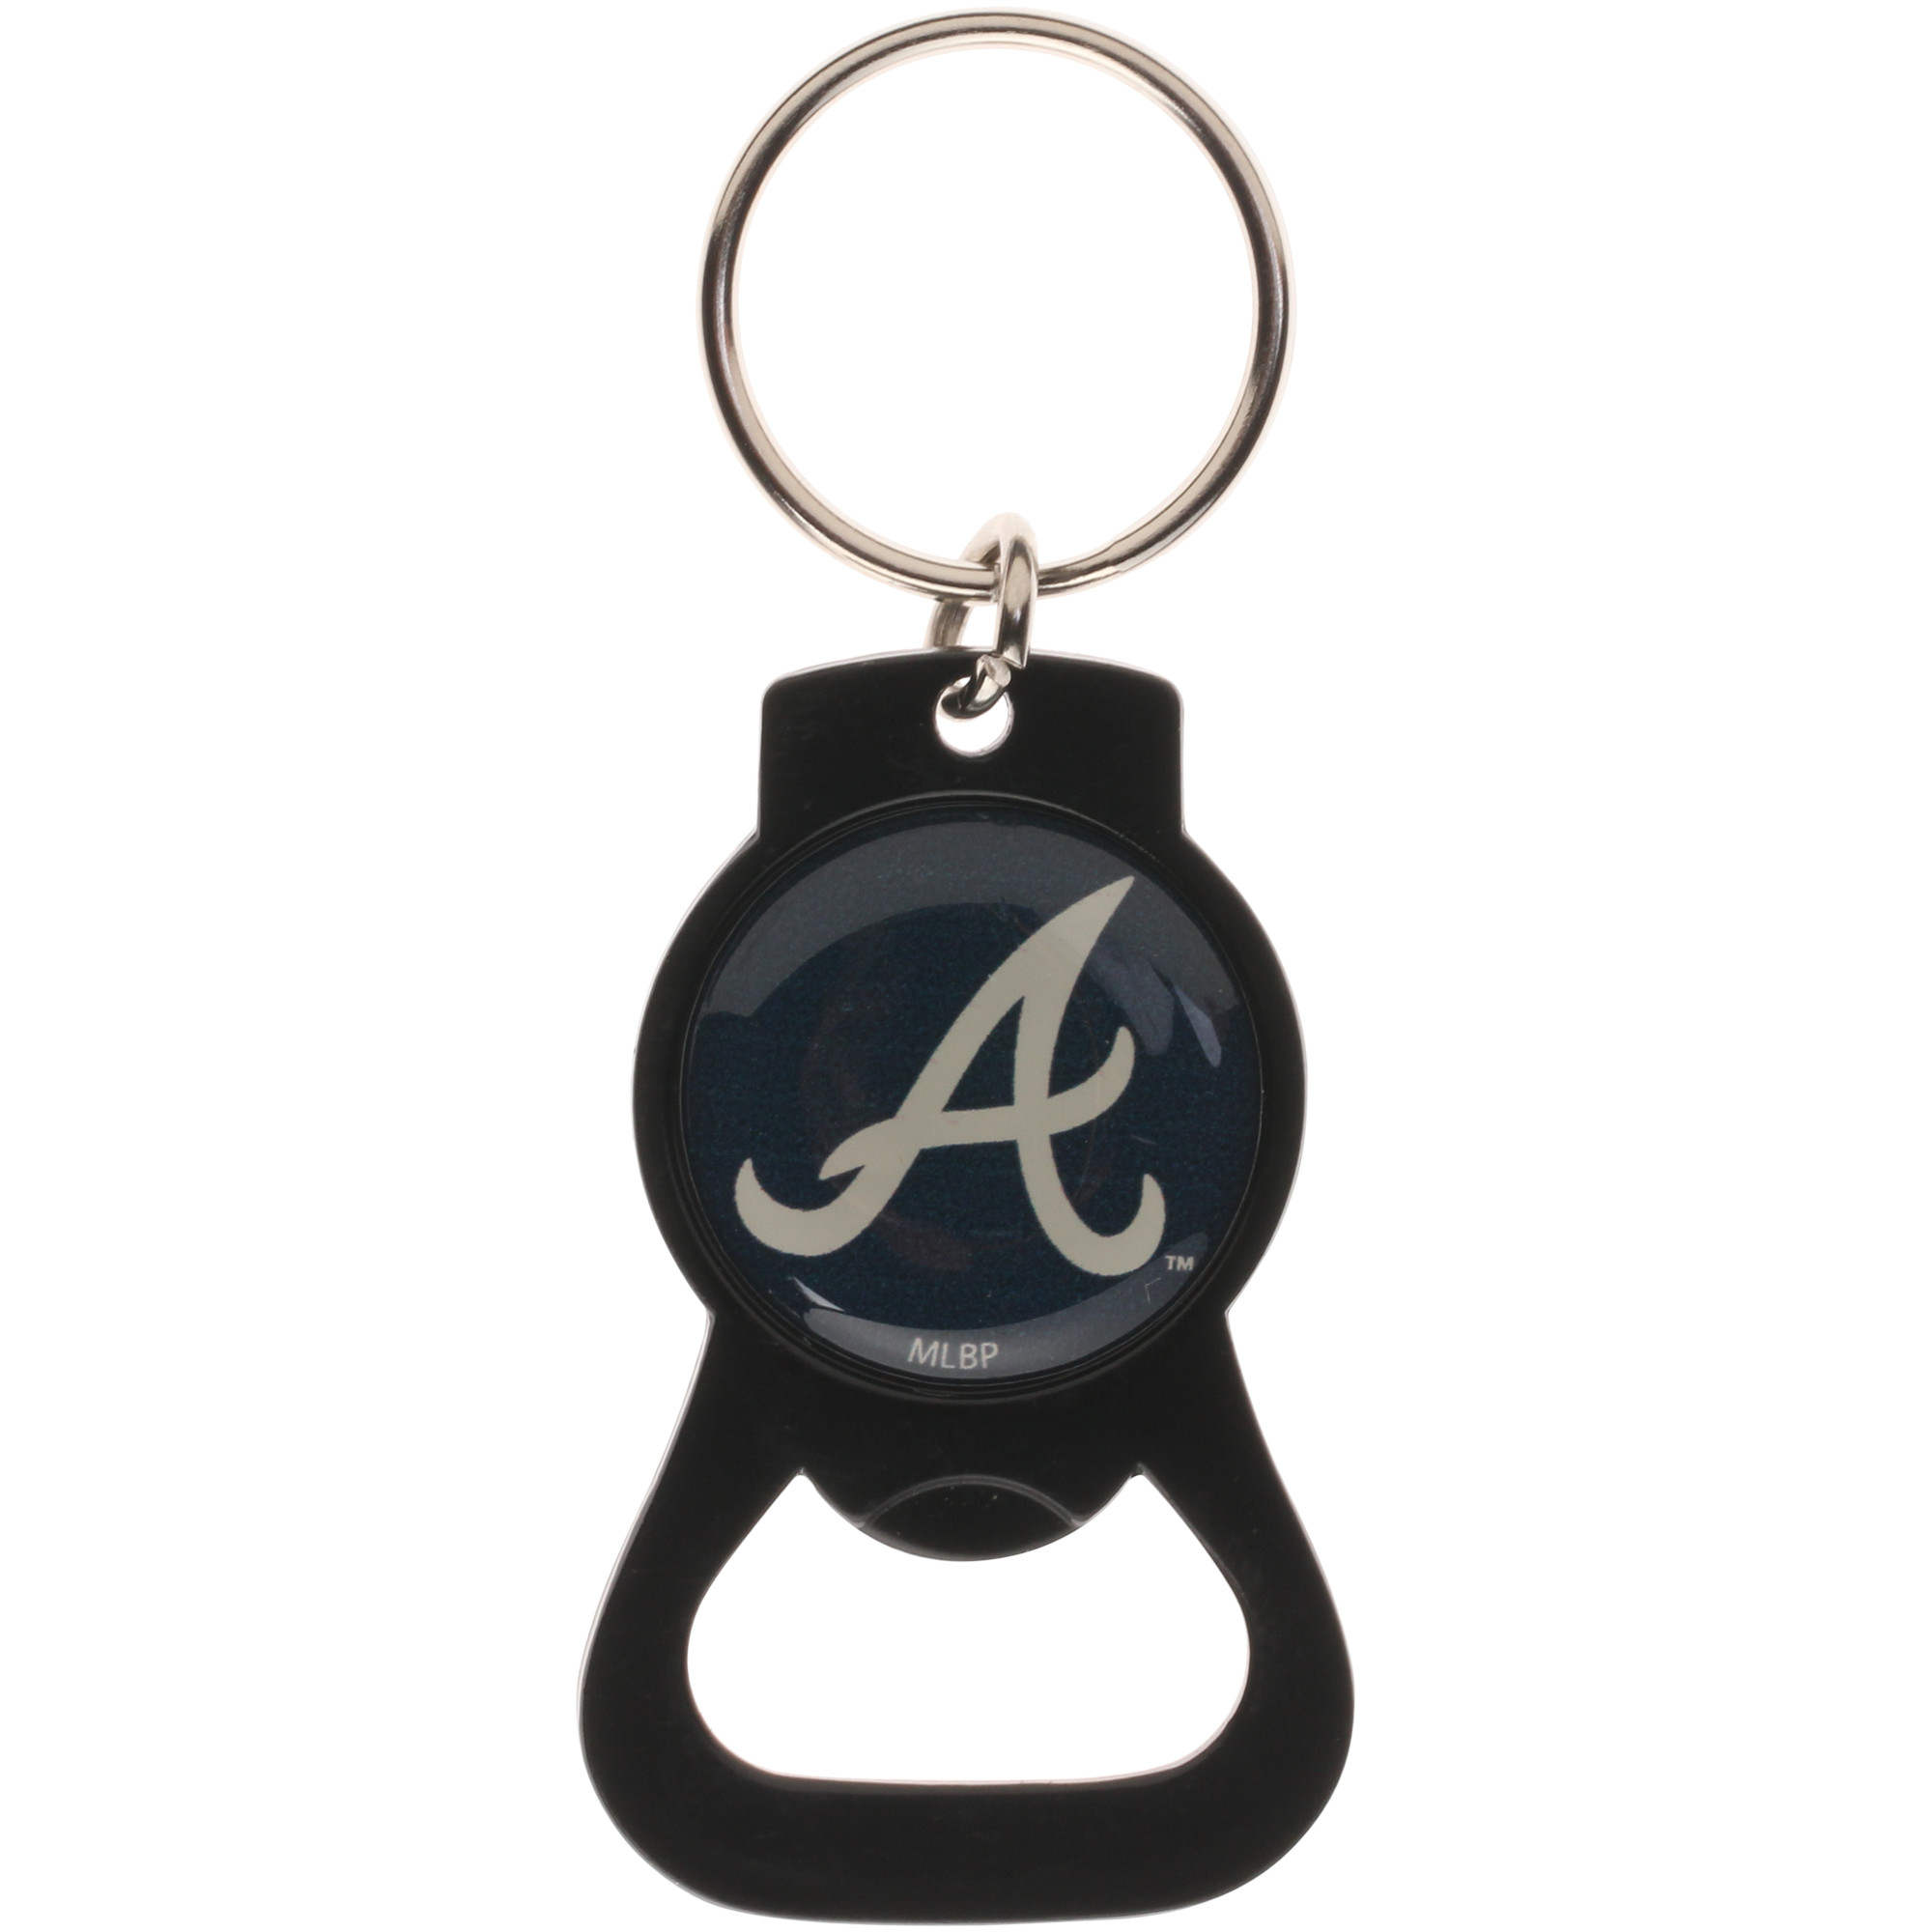 Atlanta Braves Bottle Opener Keychain - Black - No Size